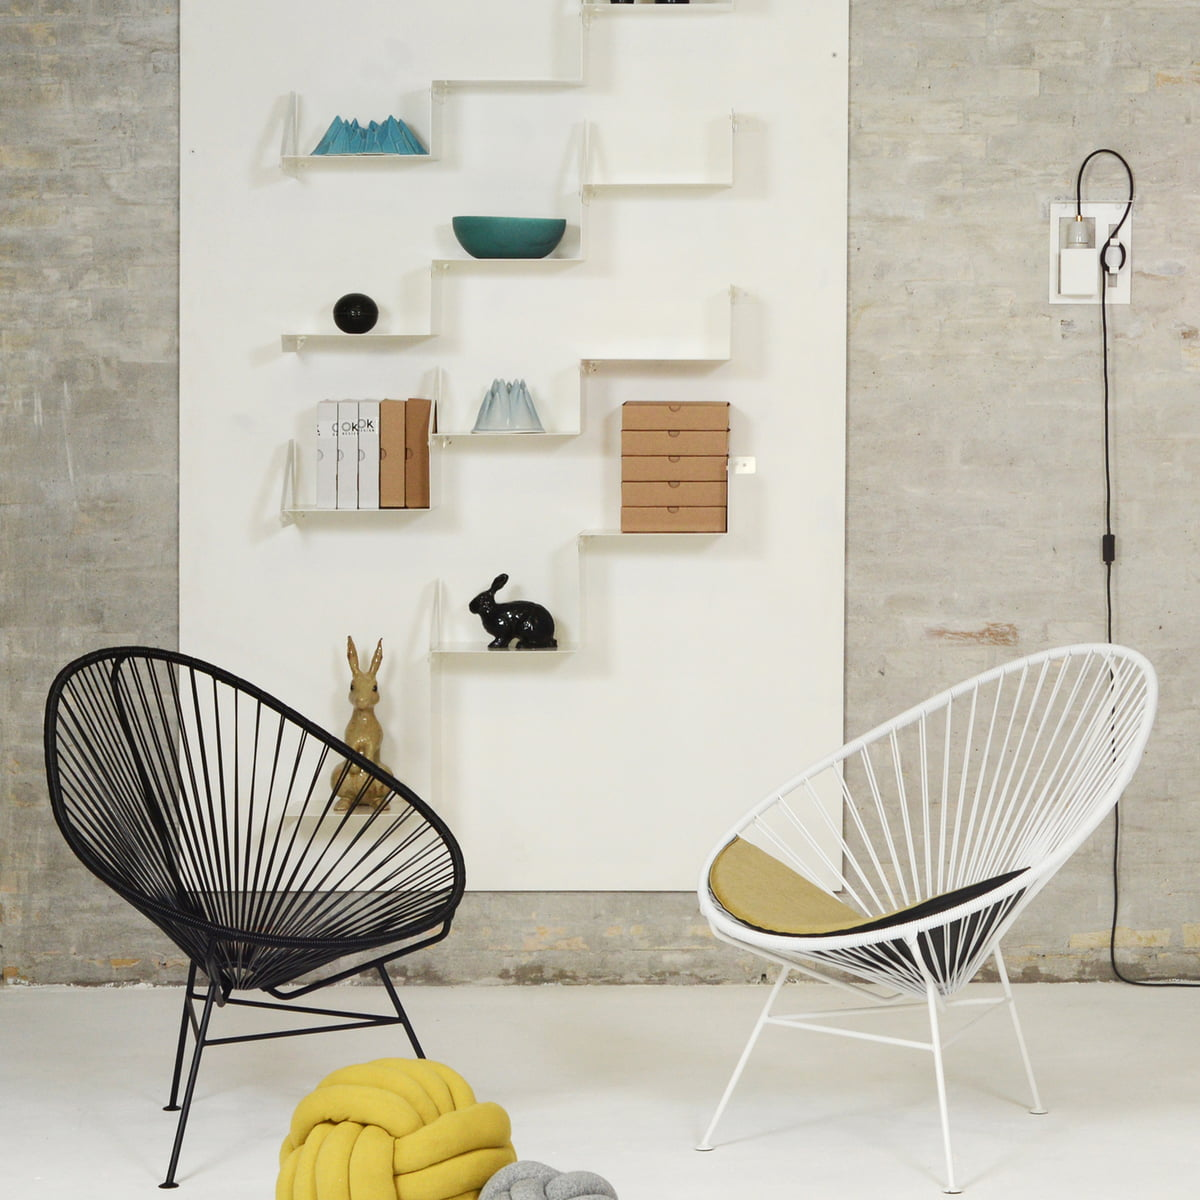 Sessel Acapulco The Ok Design Acapulco Chair In The Shop